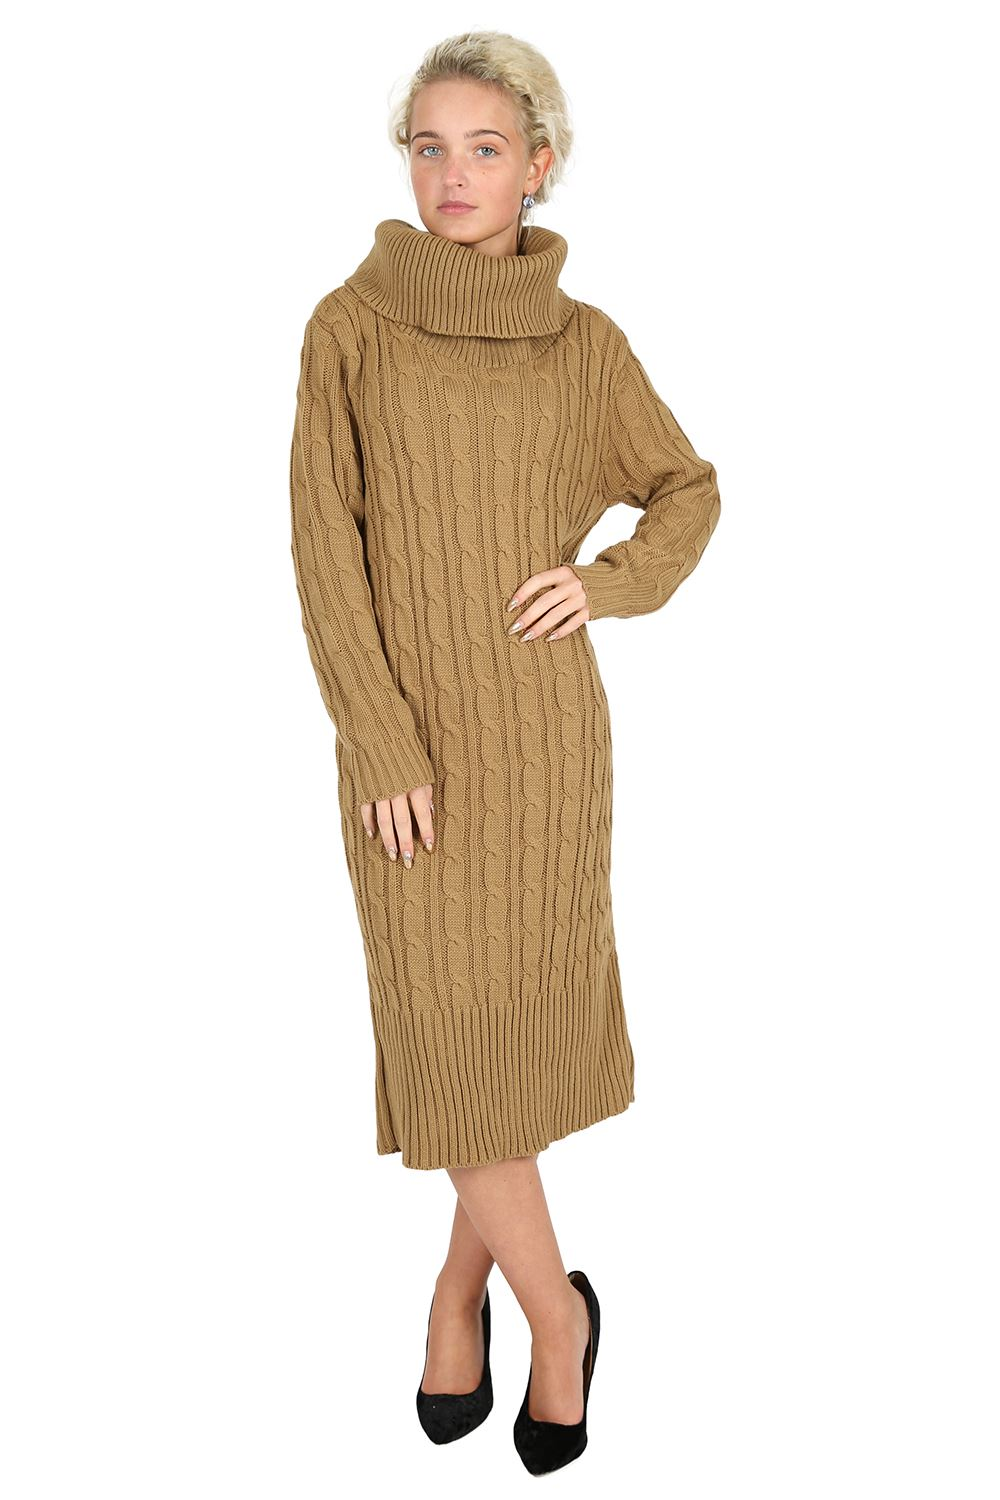 Womens Midi Dress Jumper Ladies Full Sleeve Cowl Neck Cable Knit Long Sweater...